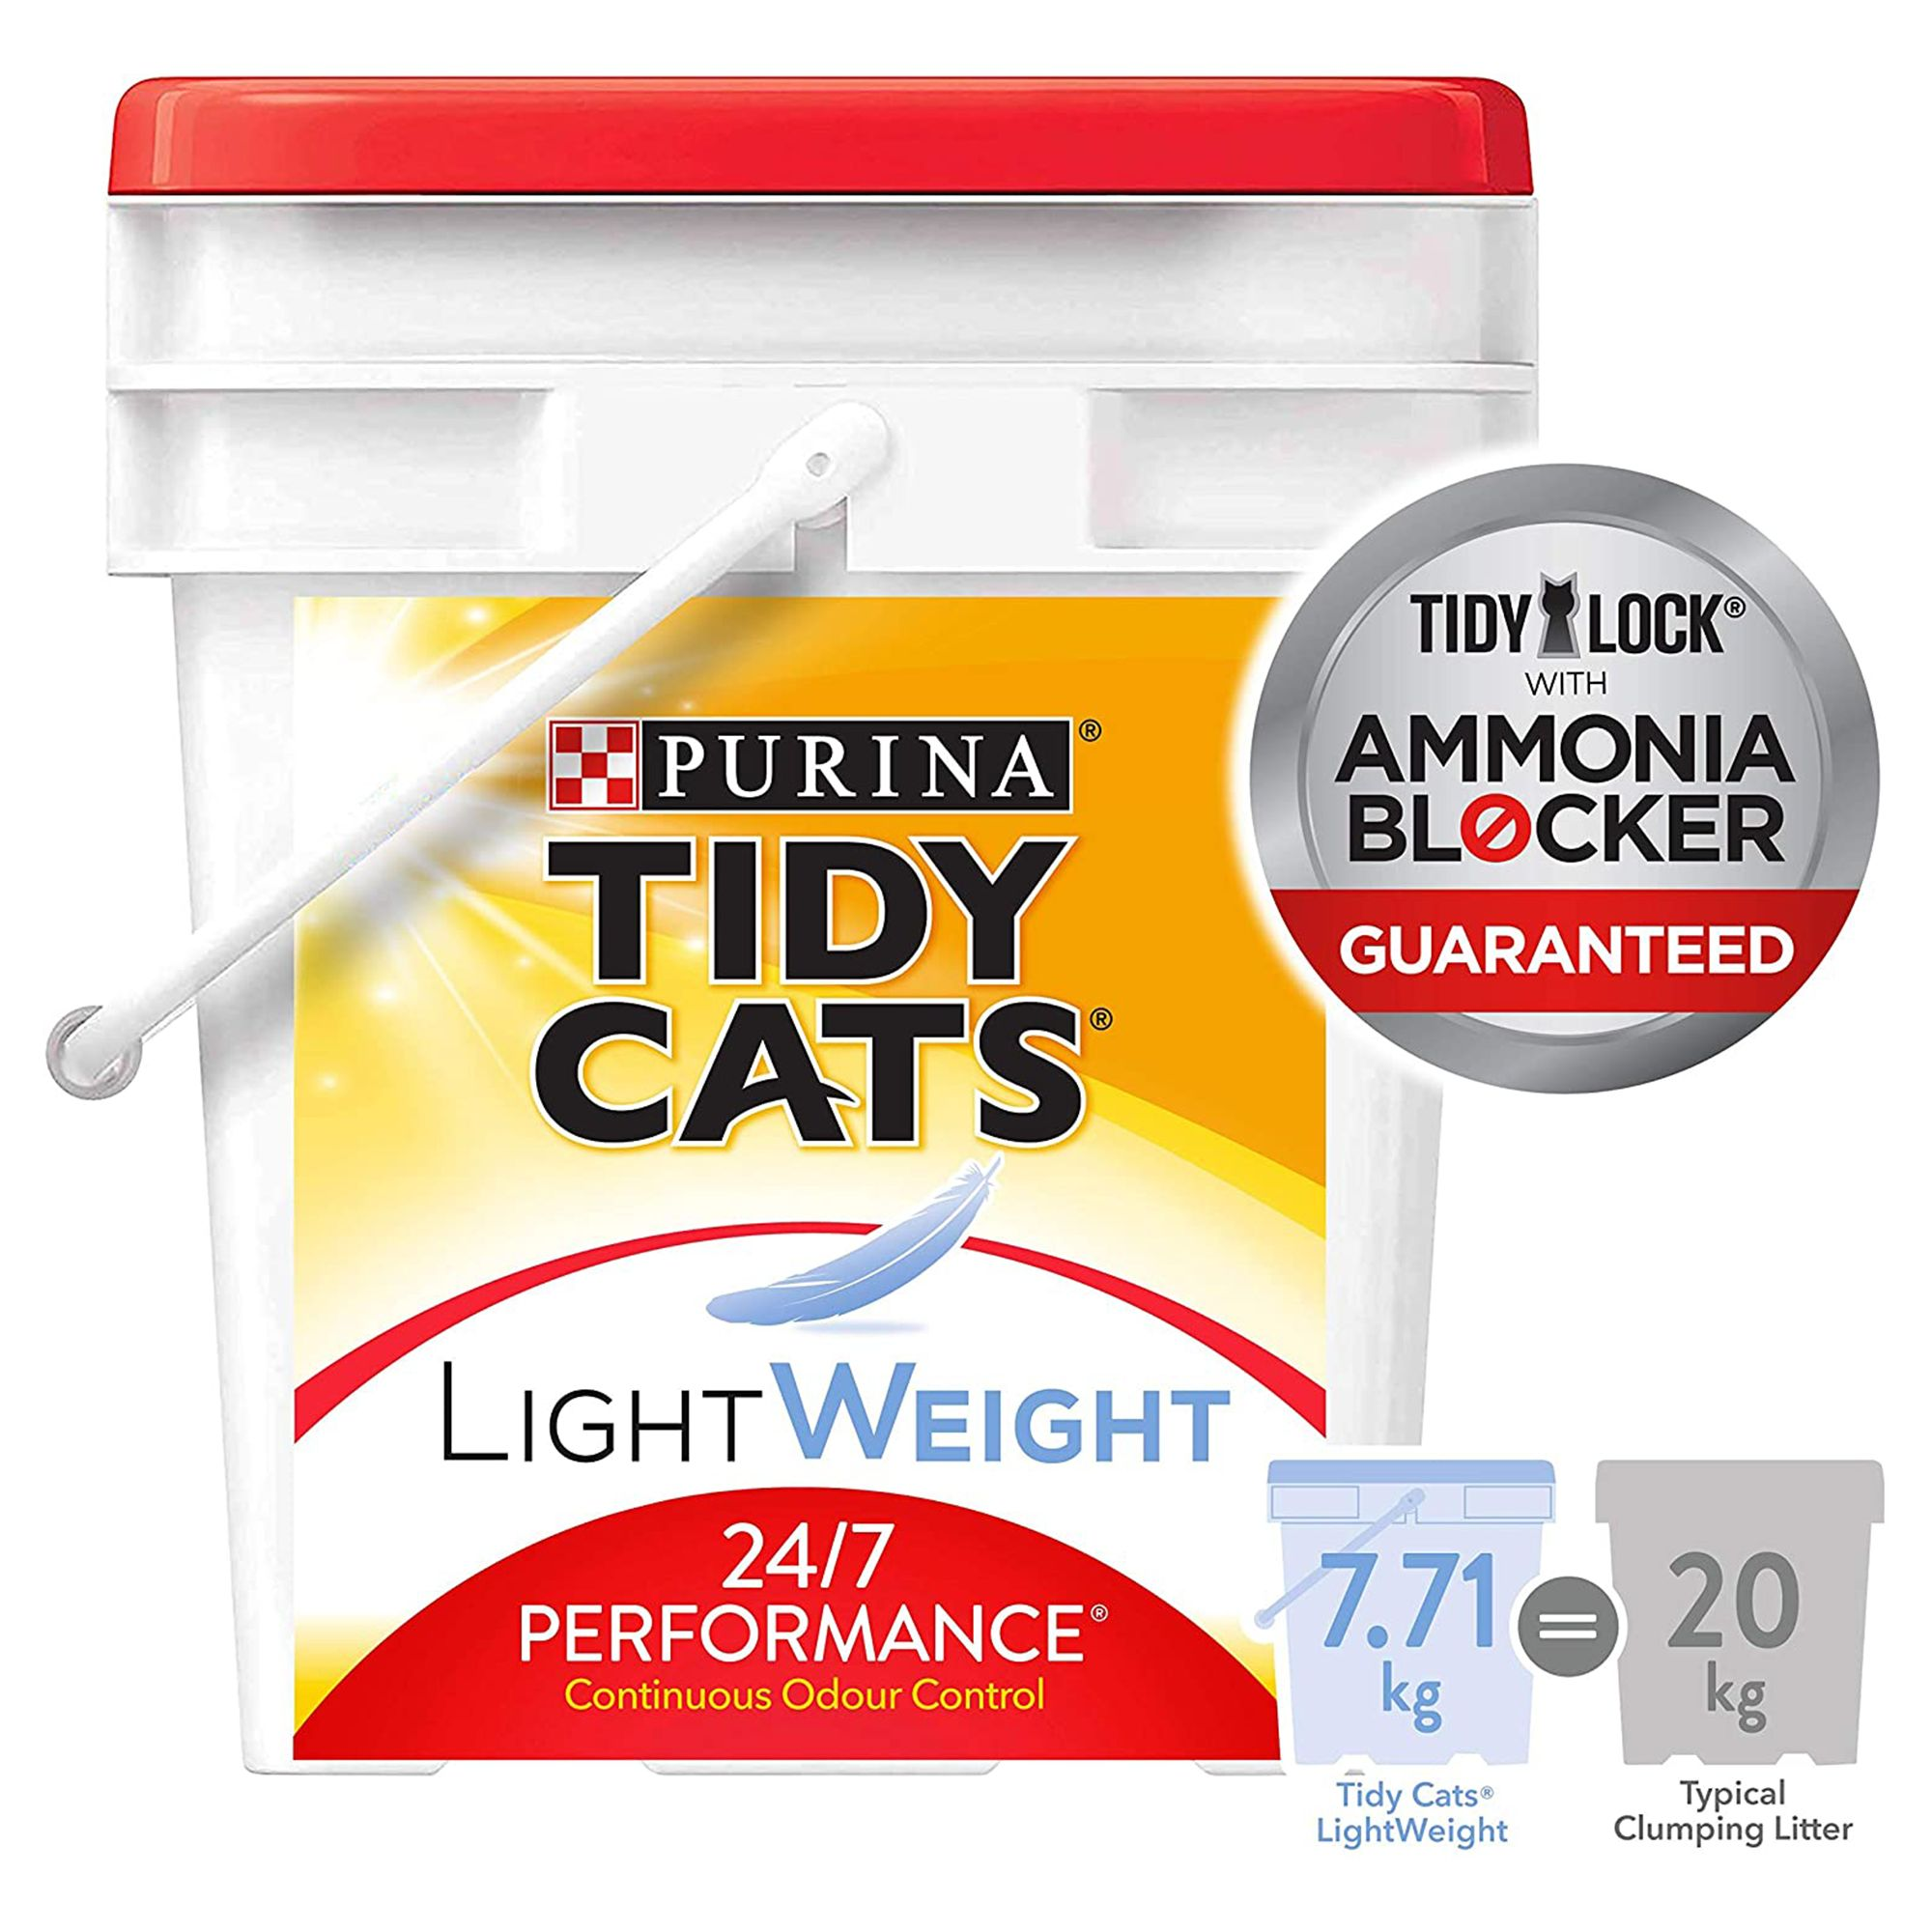 Purina Tidy Cats Light Weight 24/7 Performance Cat Litter - Clumping, Multiple Cats